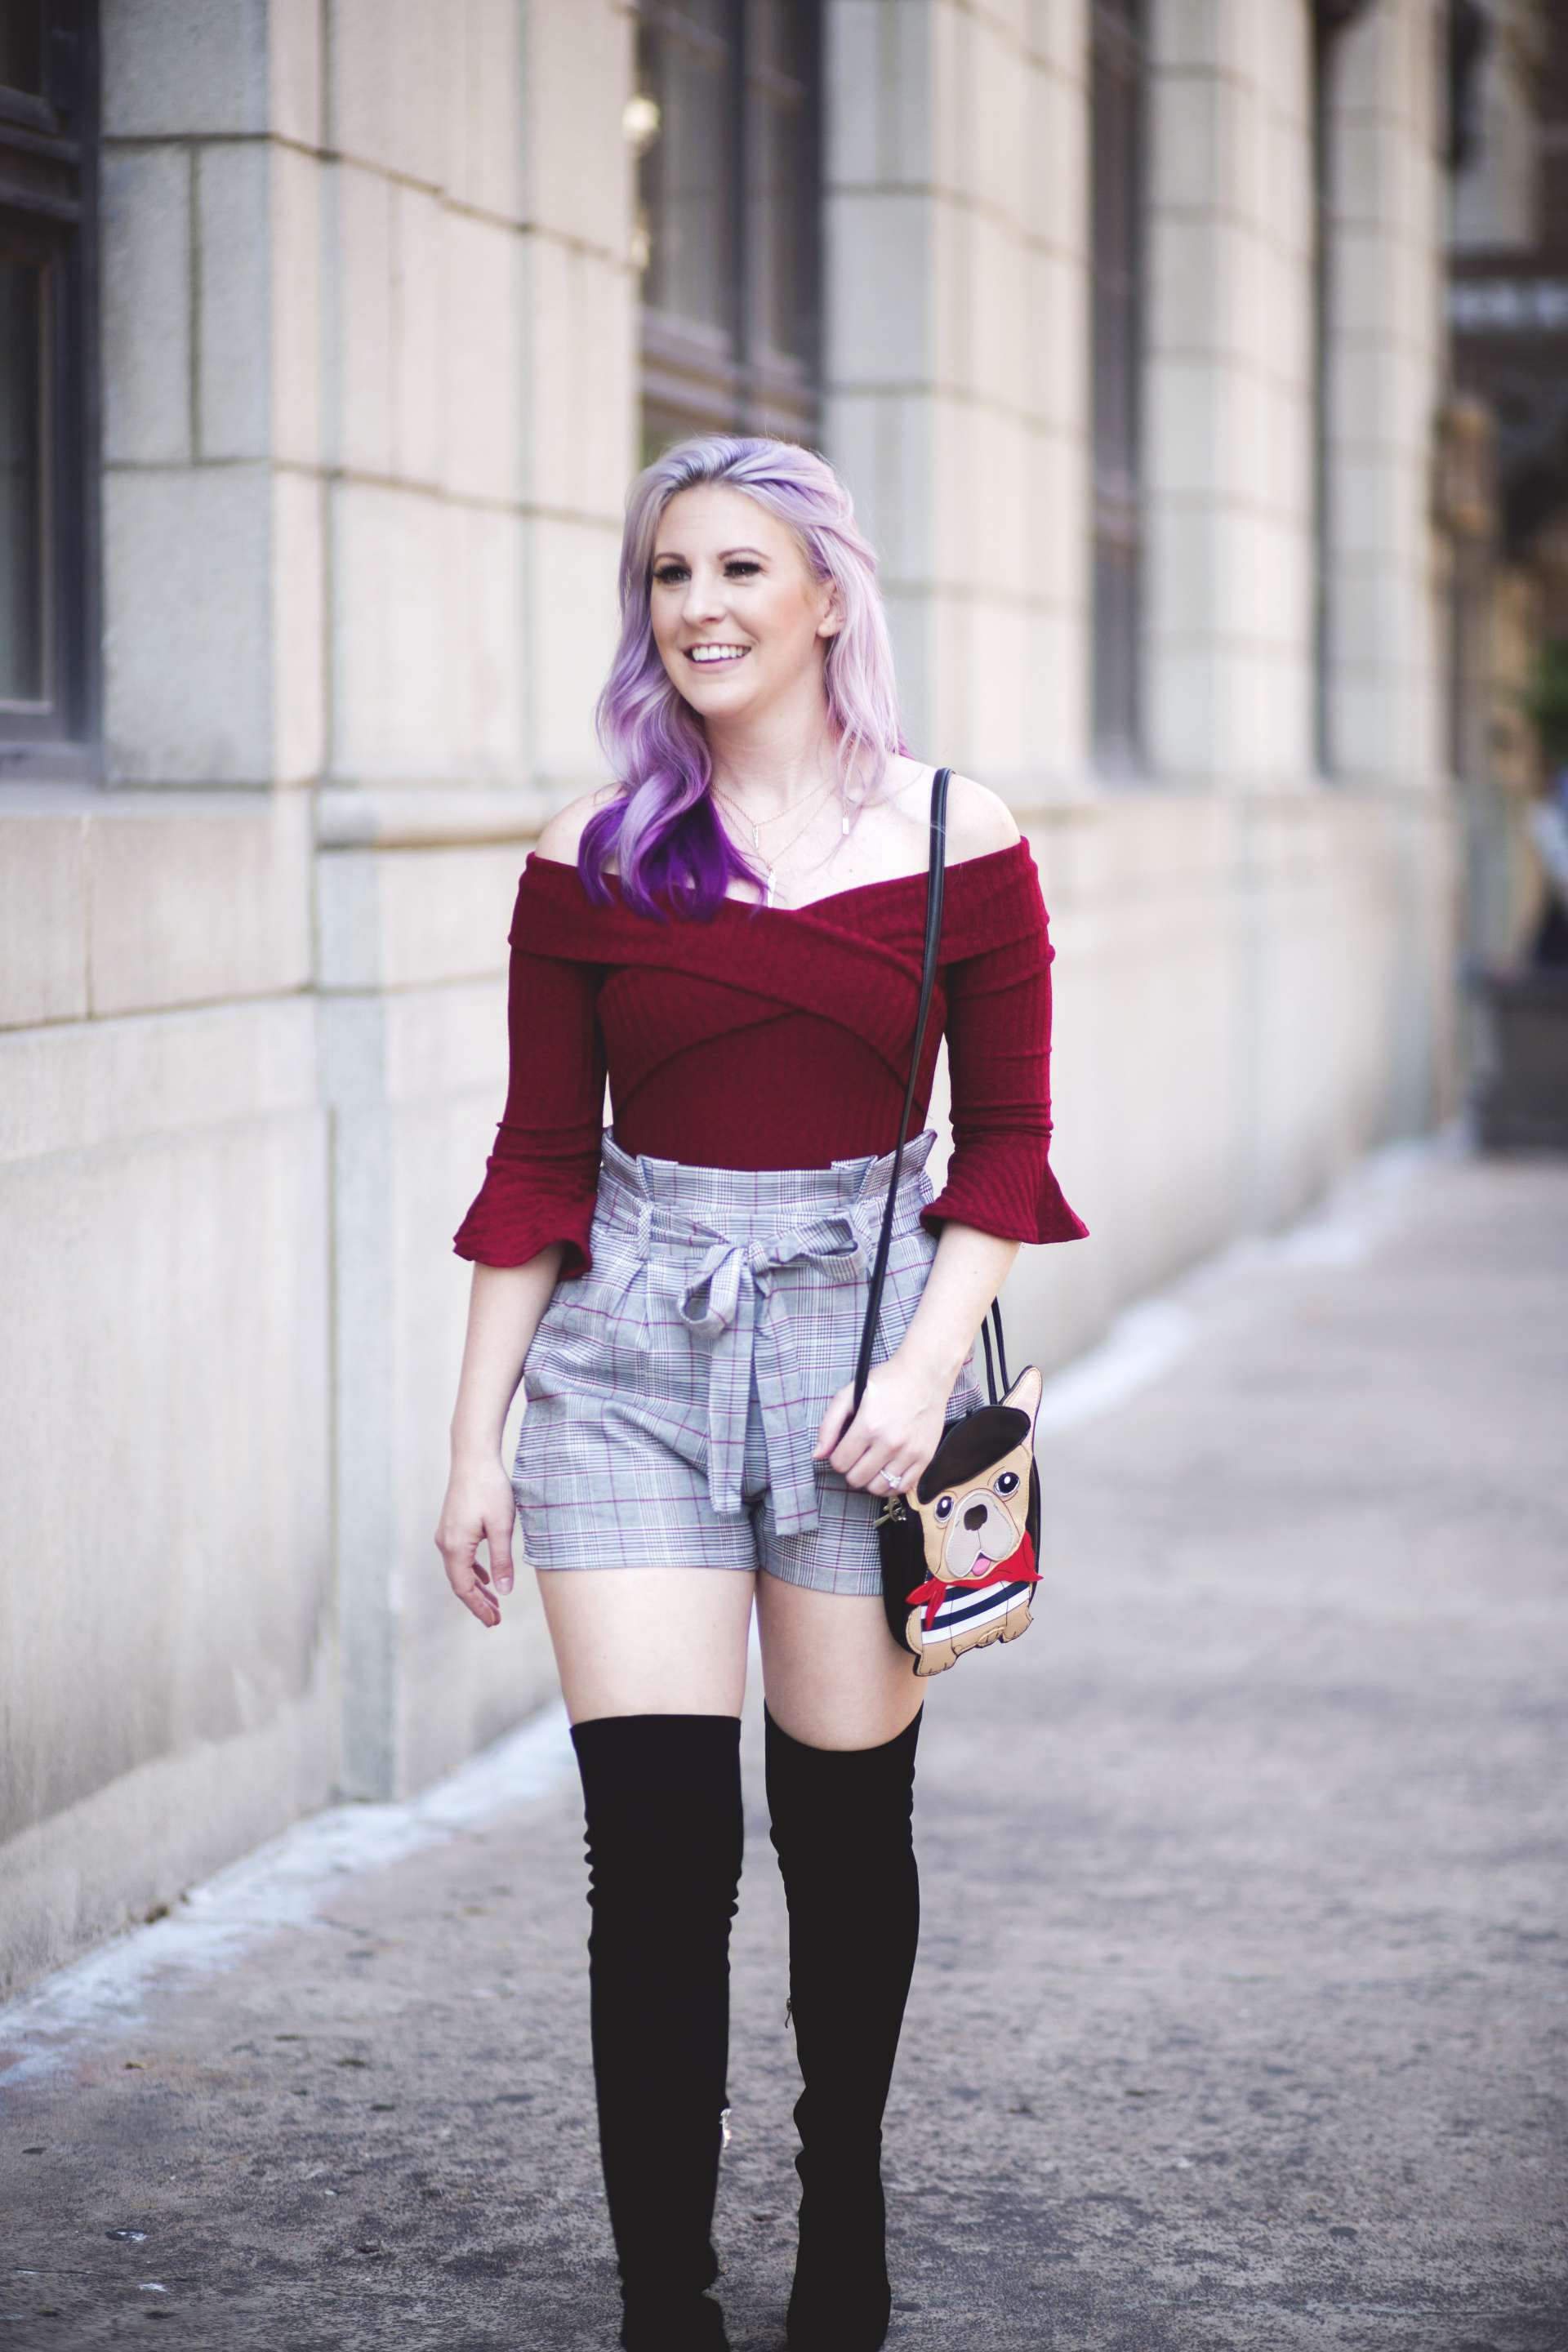 Off The Shoulder Bodysuit & Our Halloween Traditions by Houston fashion blogger Gracefully Sassy